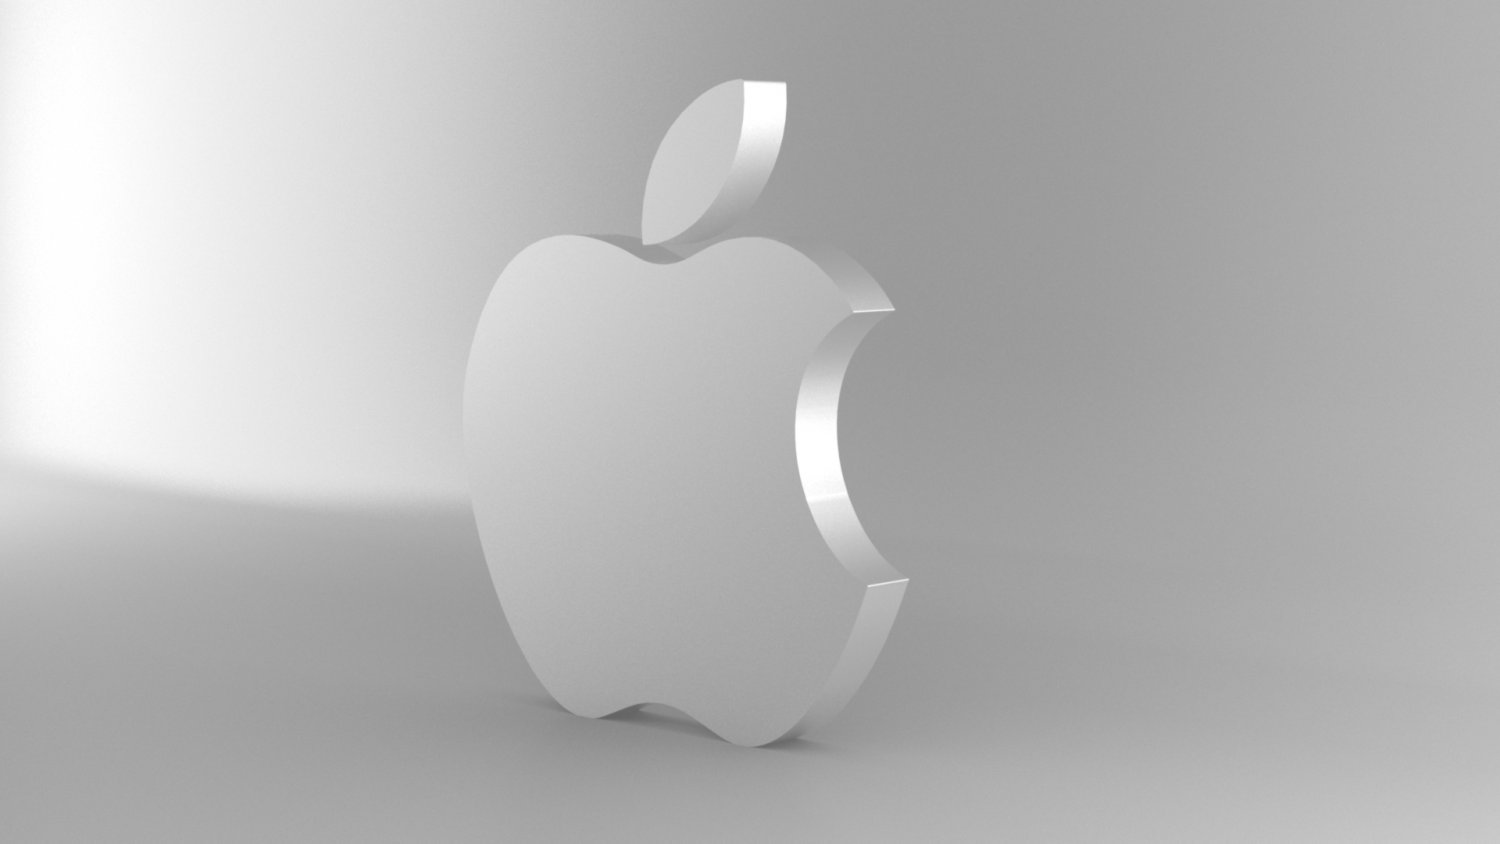 apple logo 3d model in other 3dexport